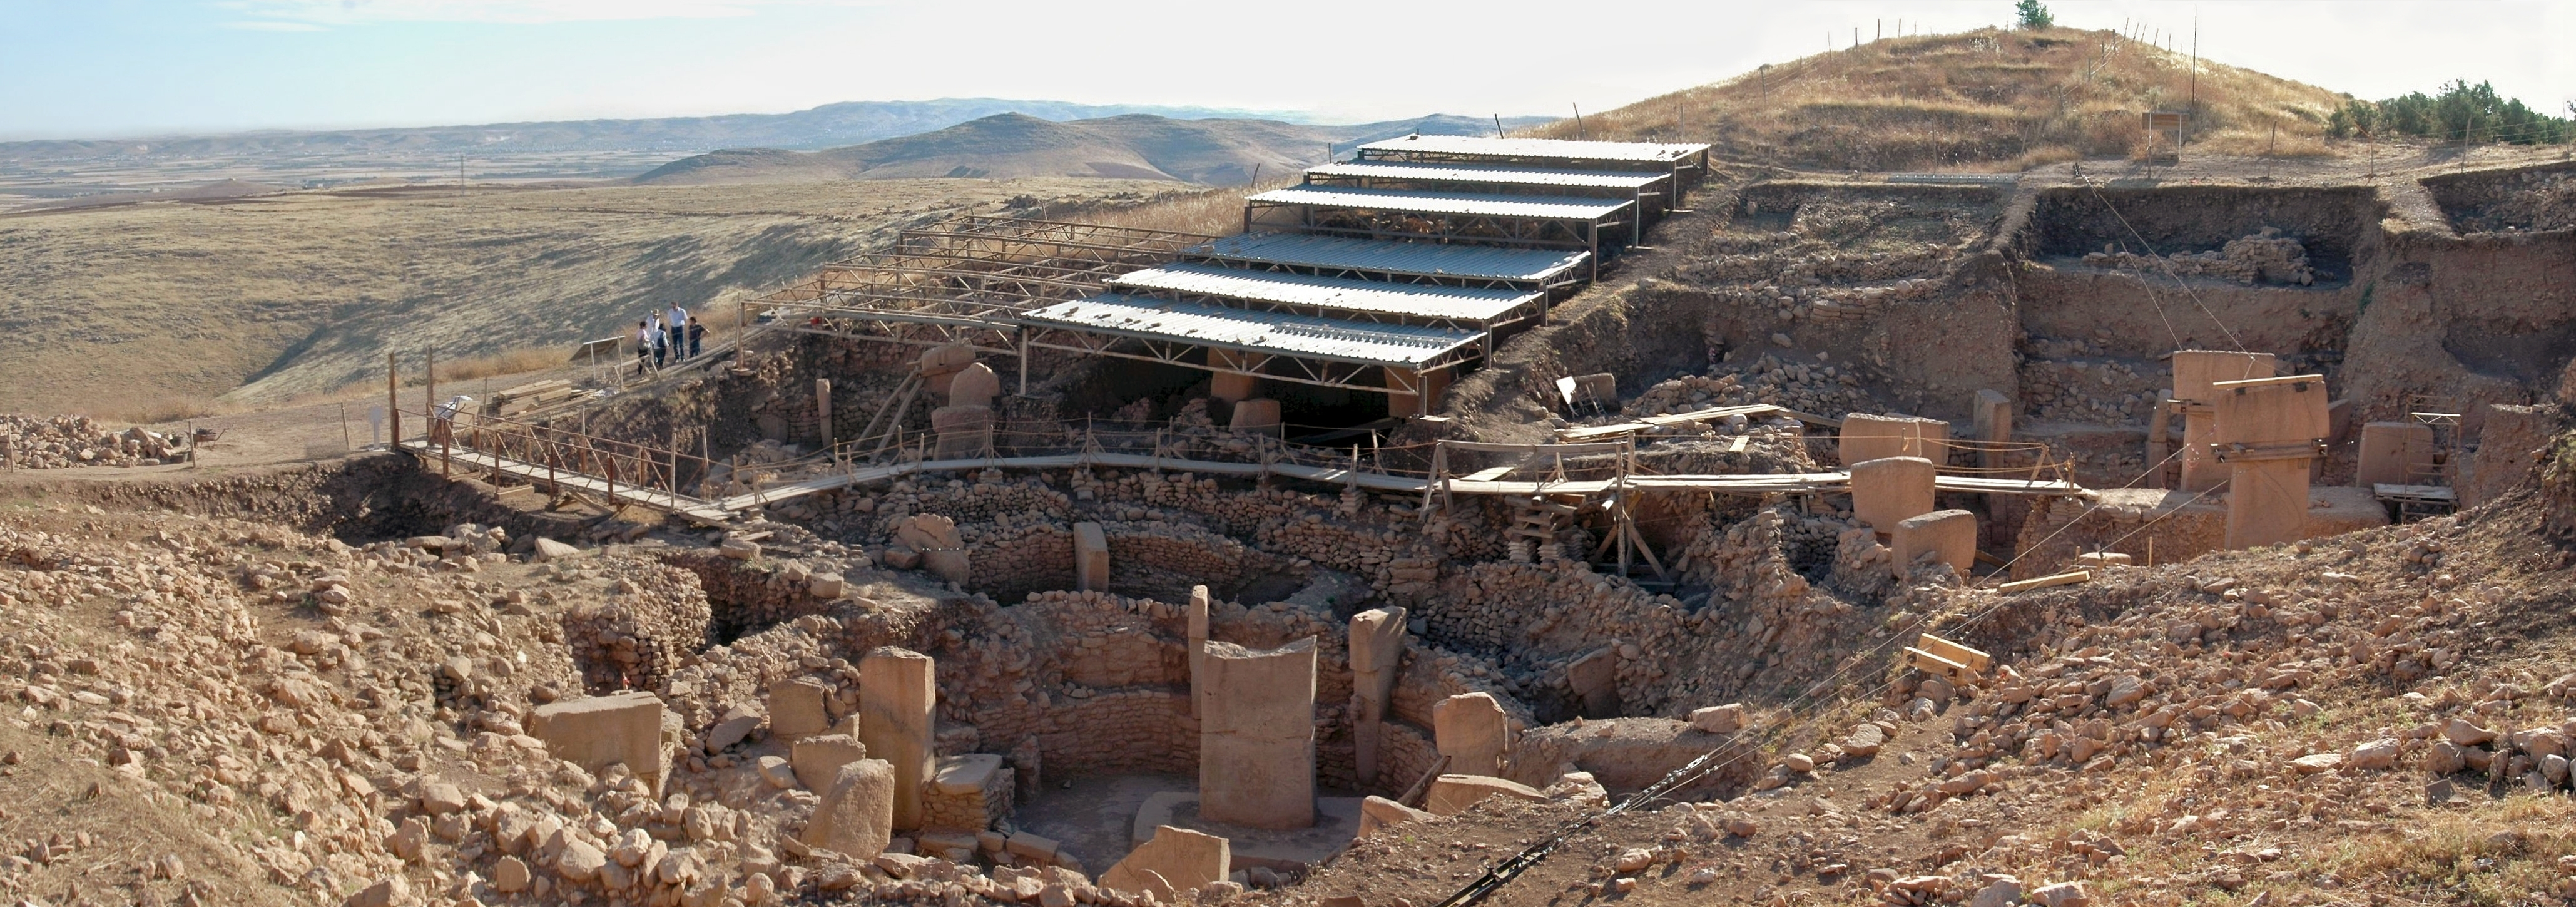 Archaeologists find 12,000-year-old pictograph at Gobeklitepe